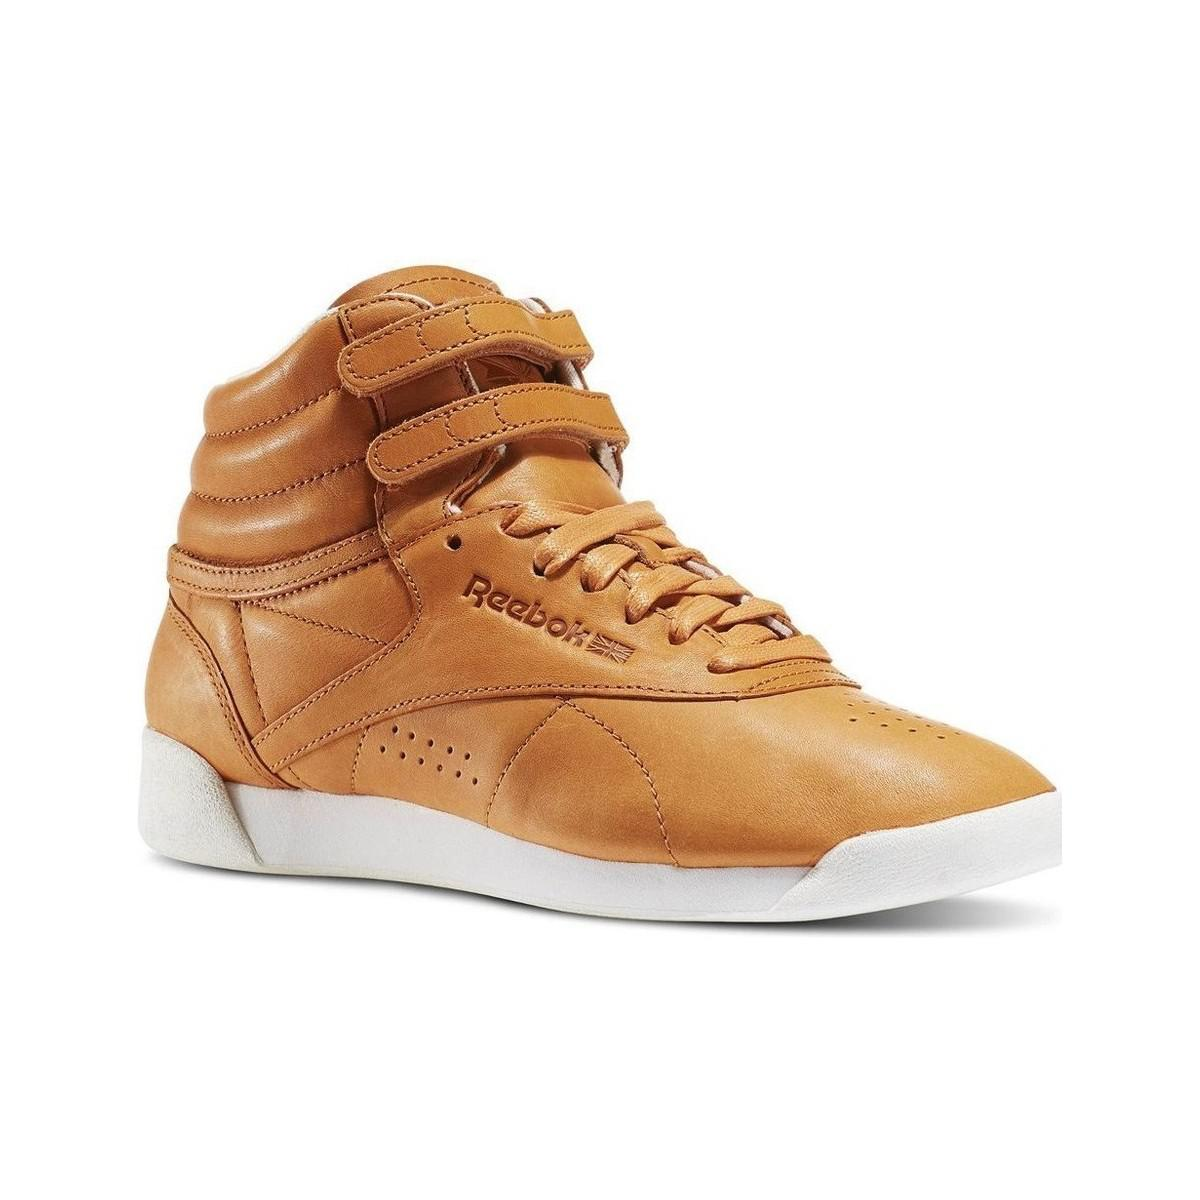 66c4332ea475 Reebok Fs Hi Face 35 Women s Shoes (high-top Trainers) In Brown in ...